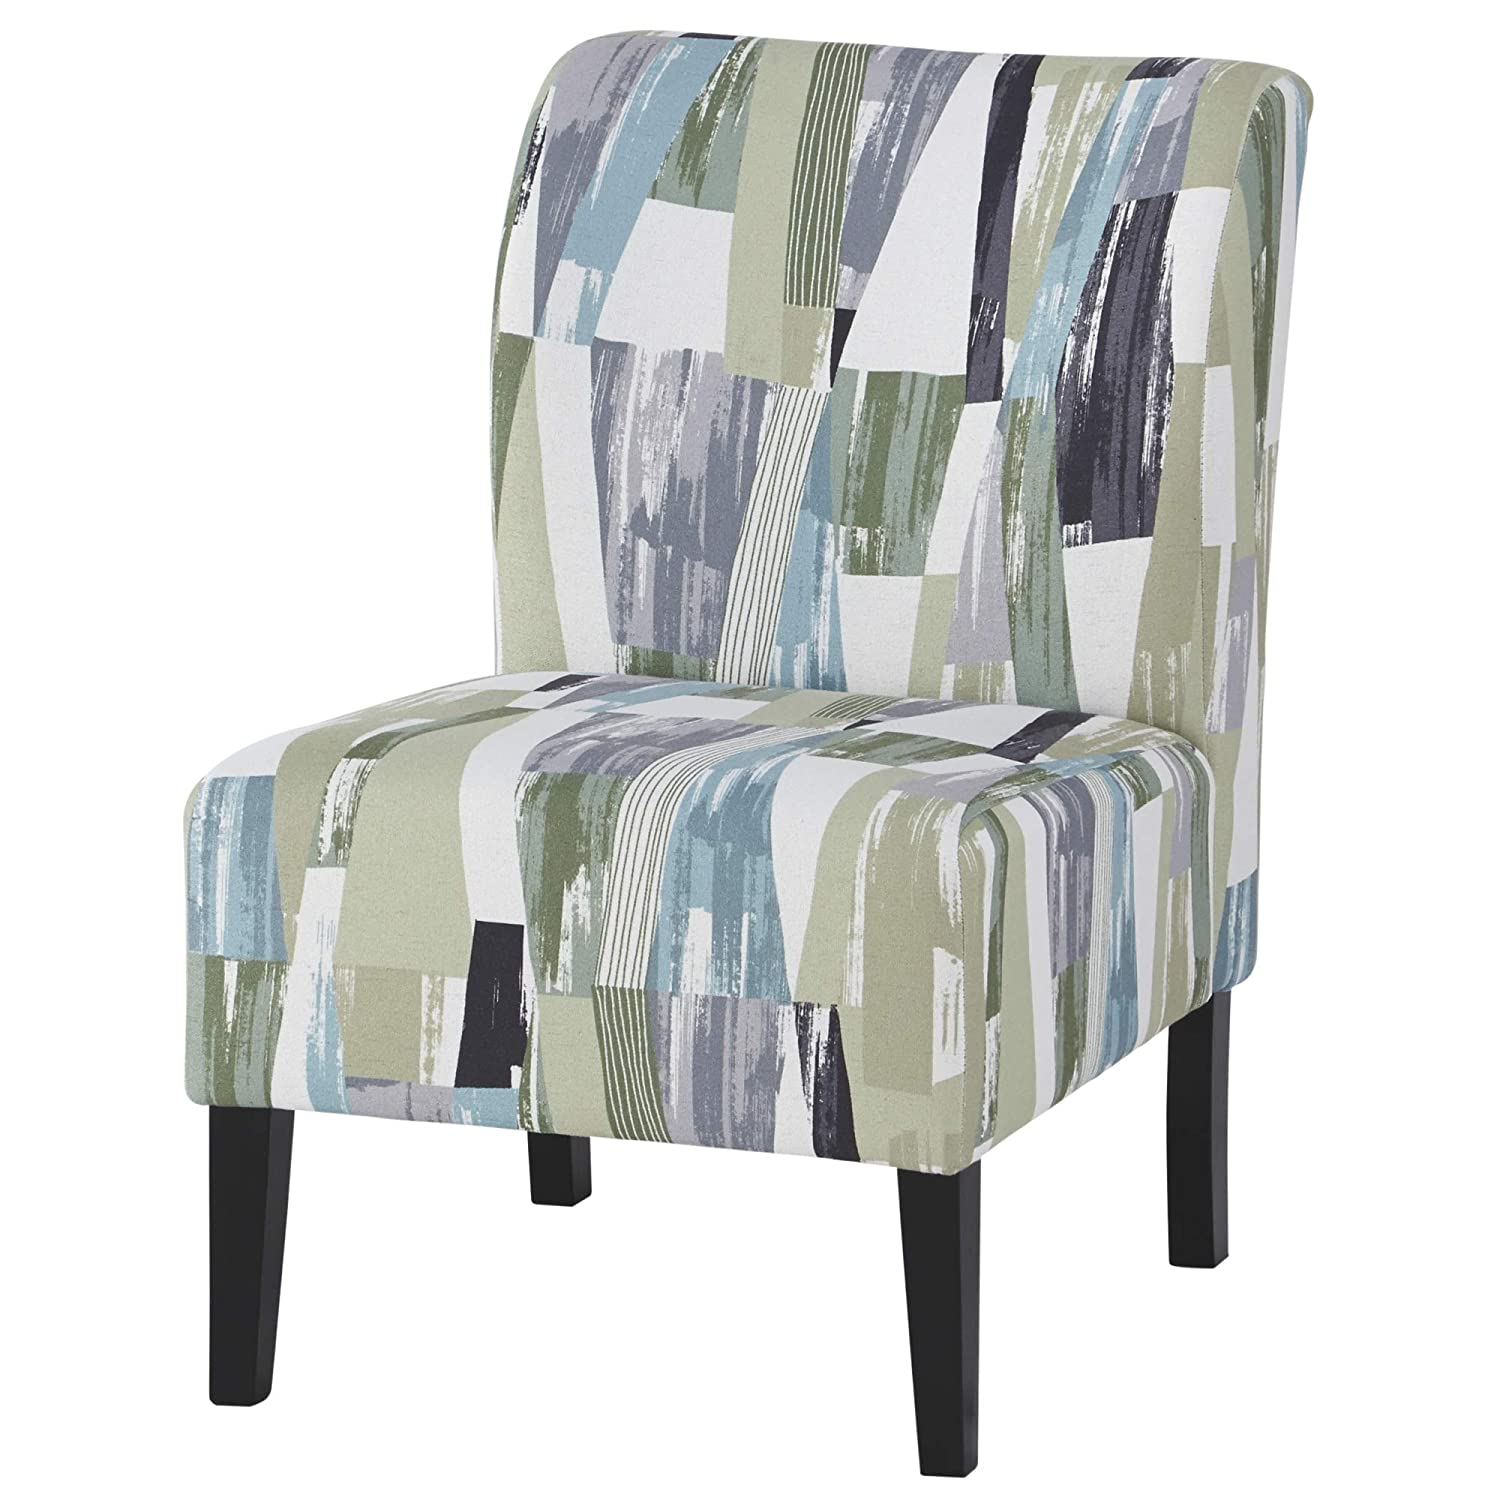 Exceptionnel Amazon.com: Ashley Furniture Signature Design   Triptis Accent Chair    Contemporary   Geometric Pattern In Green/Blue/Gray   Dark Brown Legs:  Kitchen U0026 ...